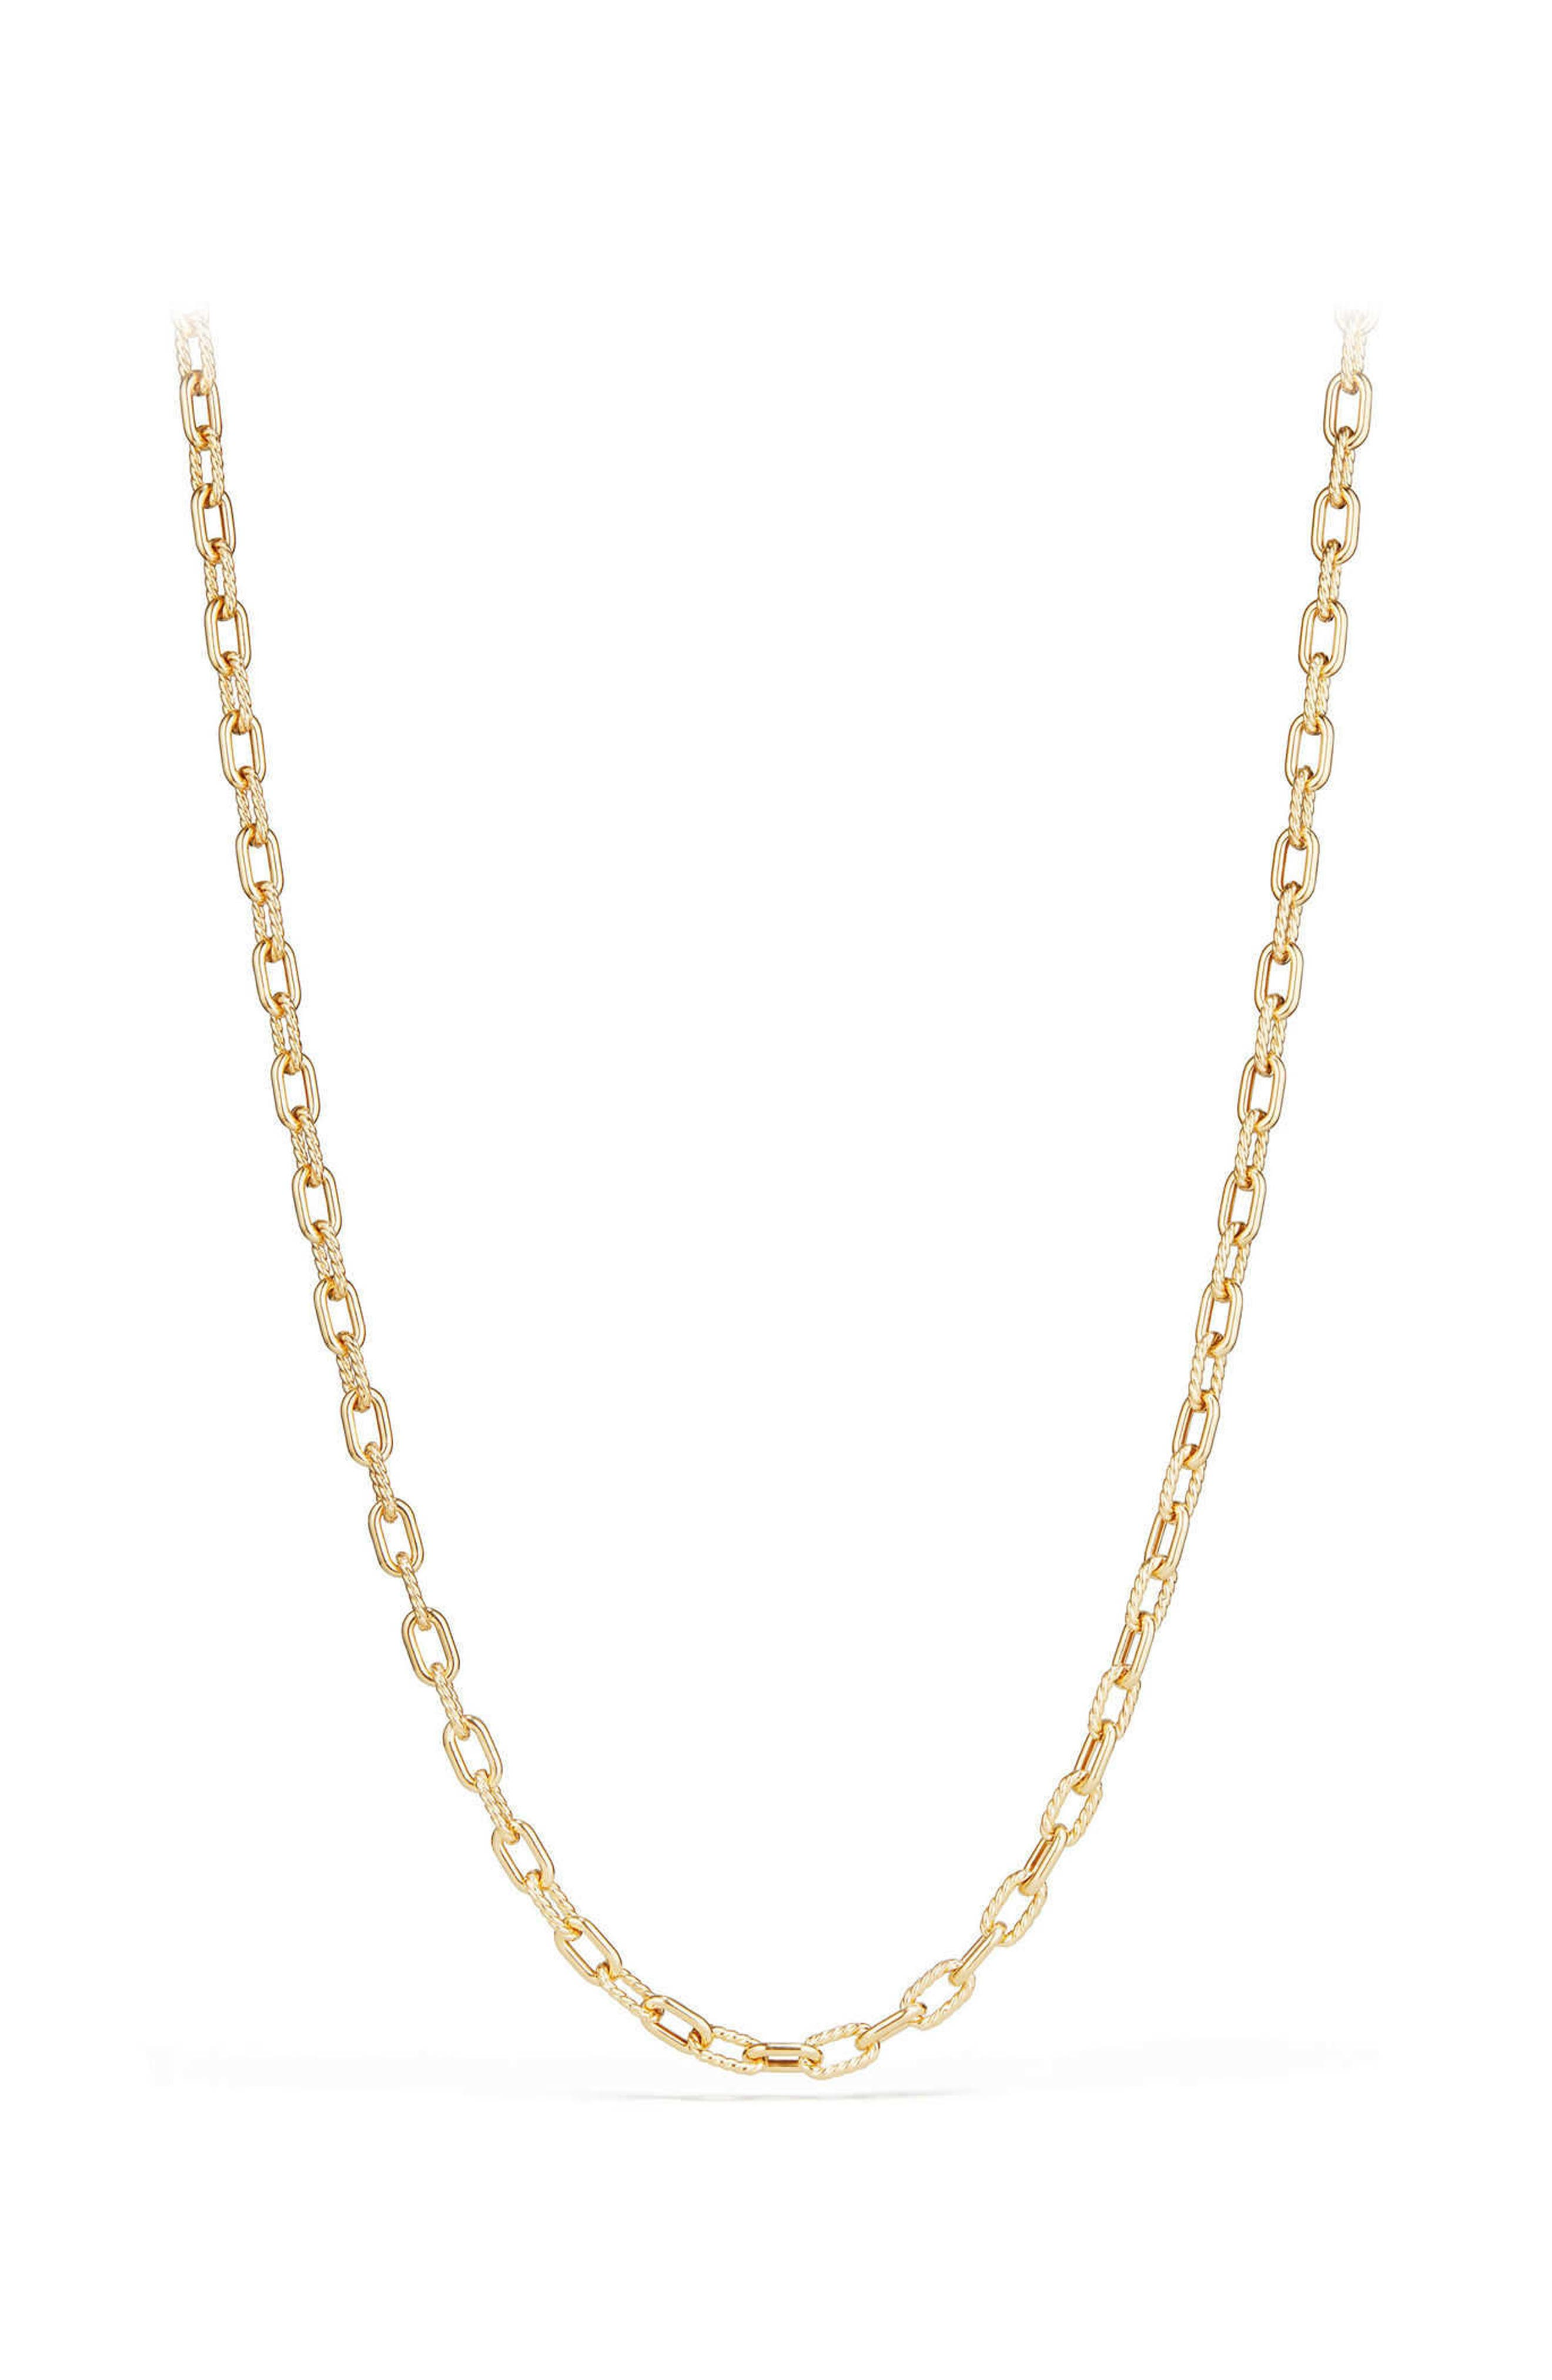 David Yurman DY Madison Bold Chain Necklace in 18K Gold